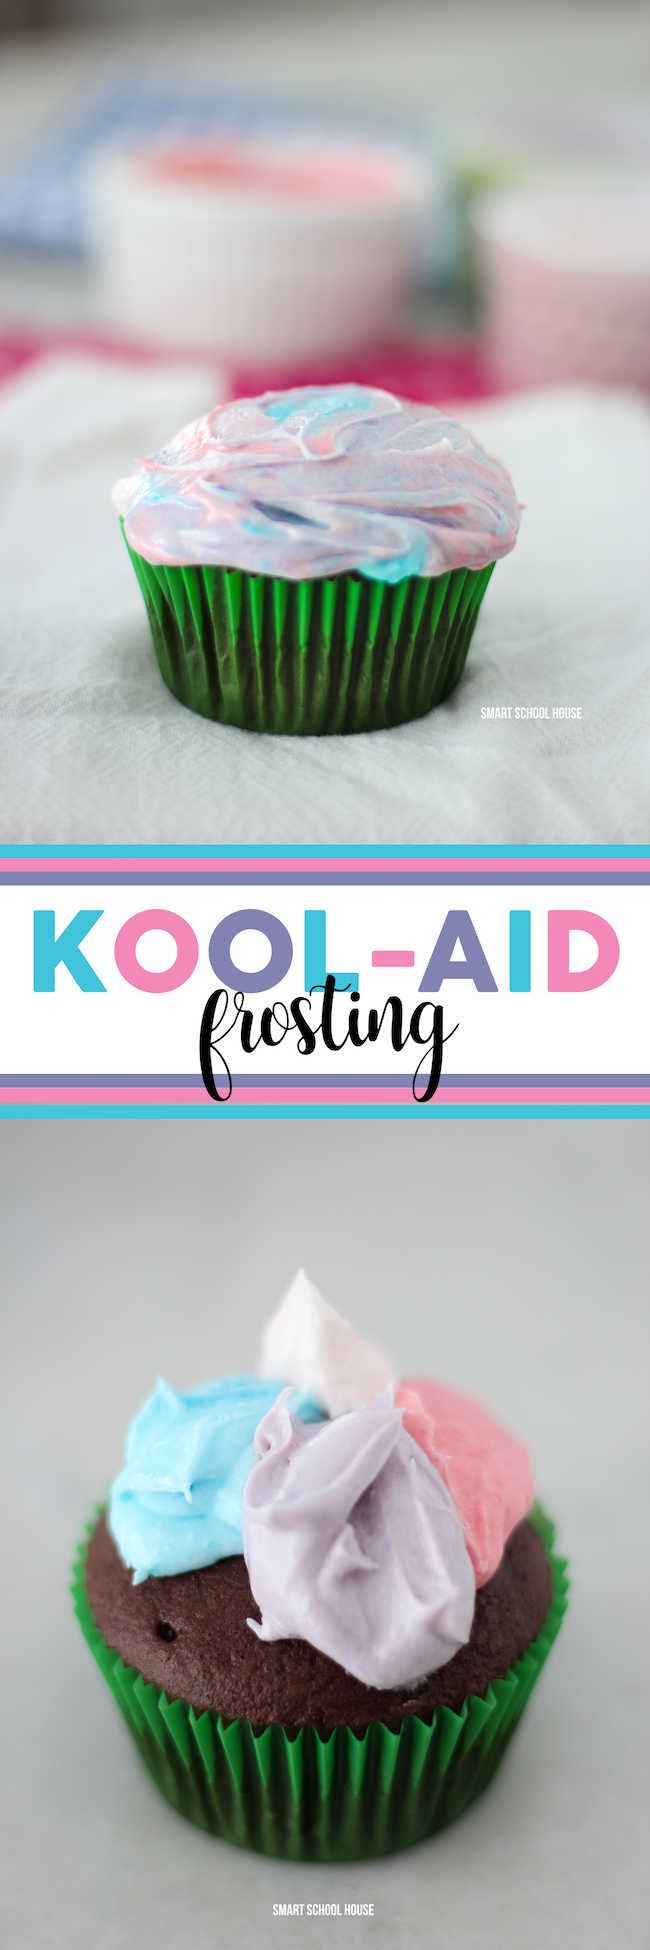 How to make sweet and creamy rainbow Kool Aid Frosting! This is BEST recipe for Kool Aid Frosting. Homemade with a Crisco frosting base. You can add any flavor of Kool Aid!